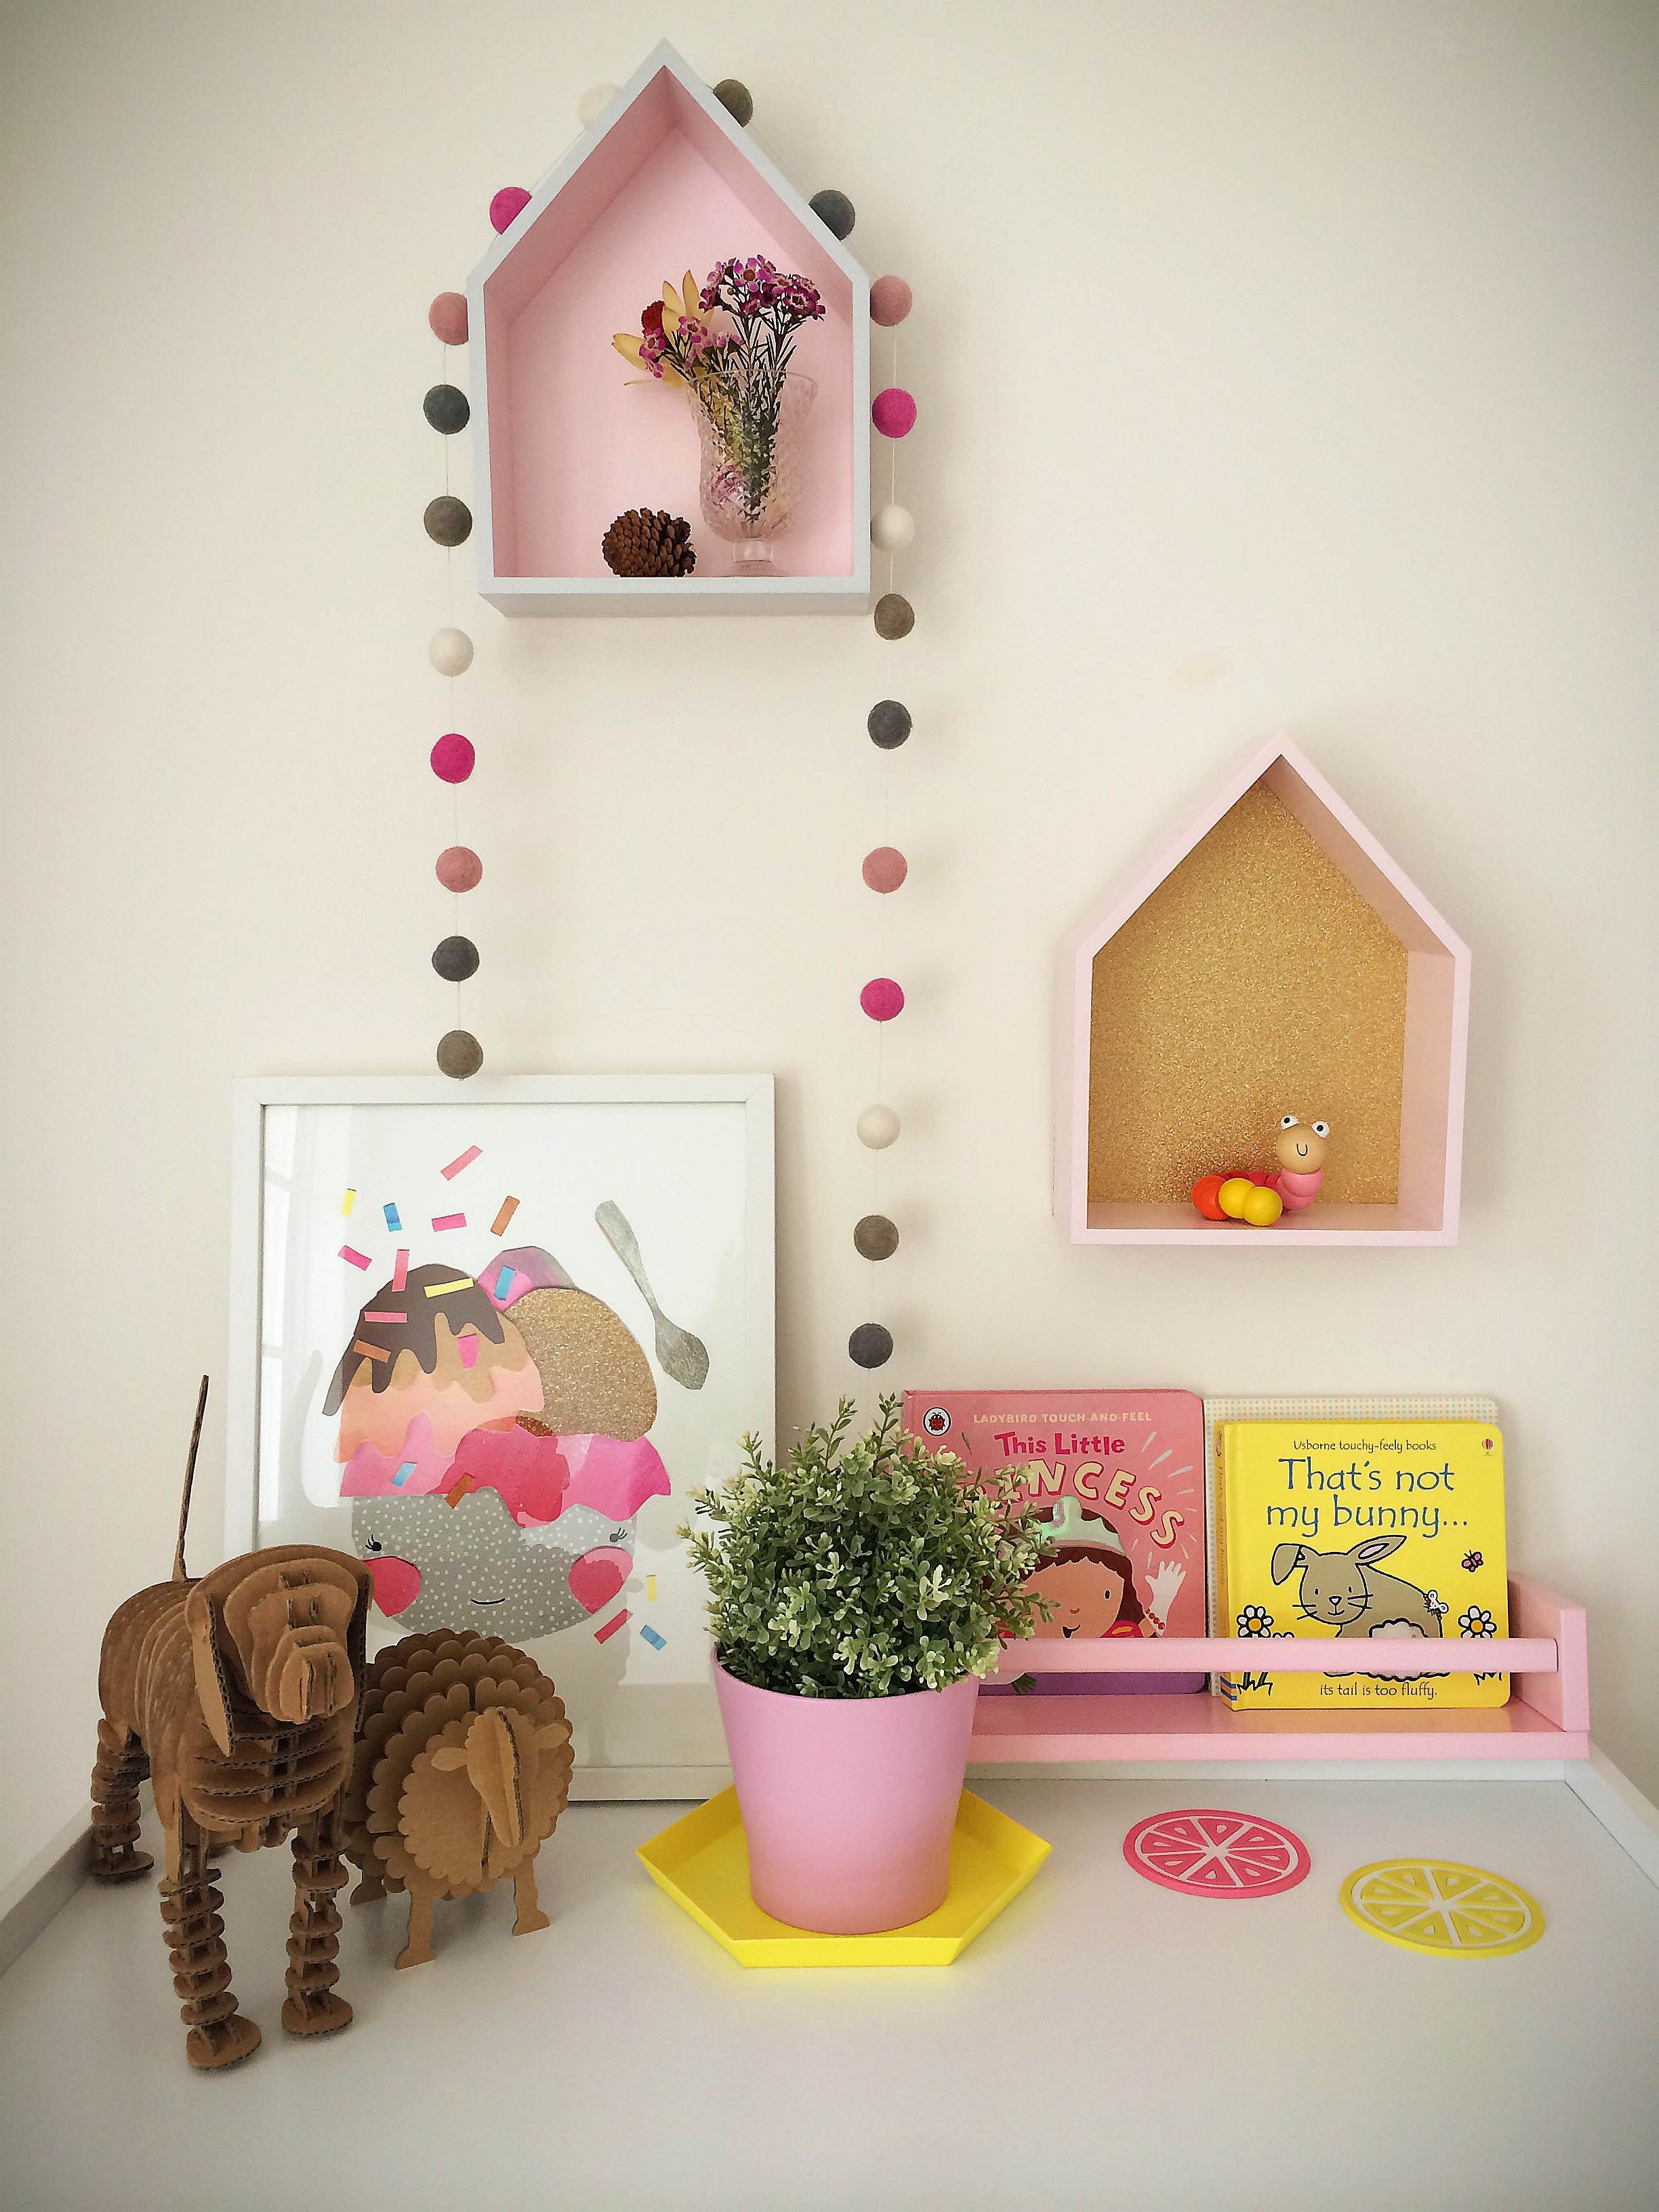 Children S Interior Design Childrens Interior Design Childrens Interiors Decorating Shelves